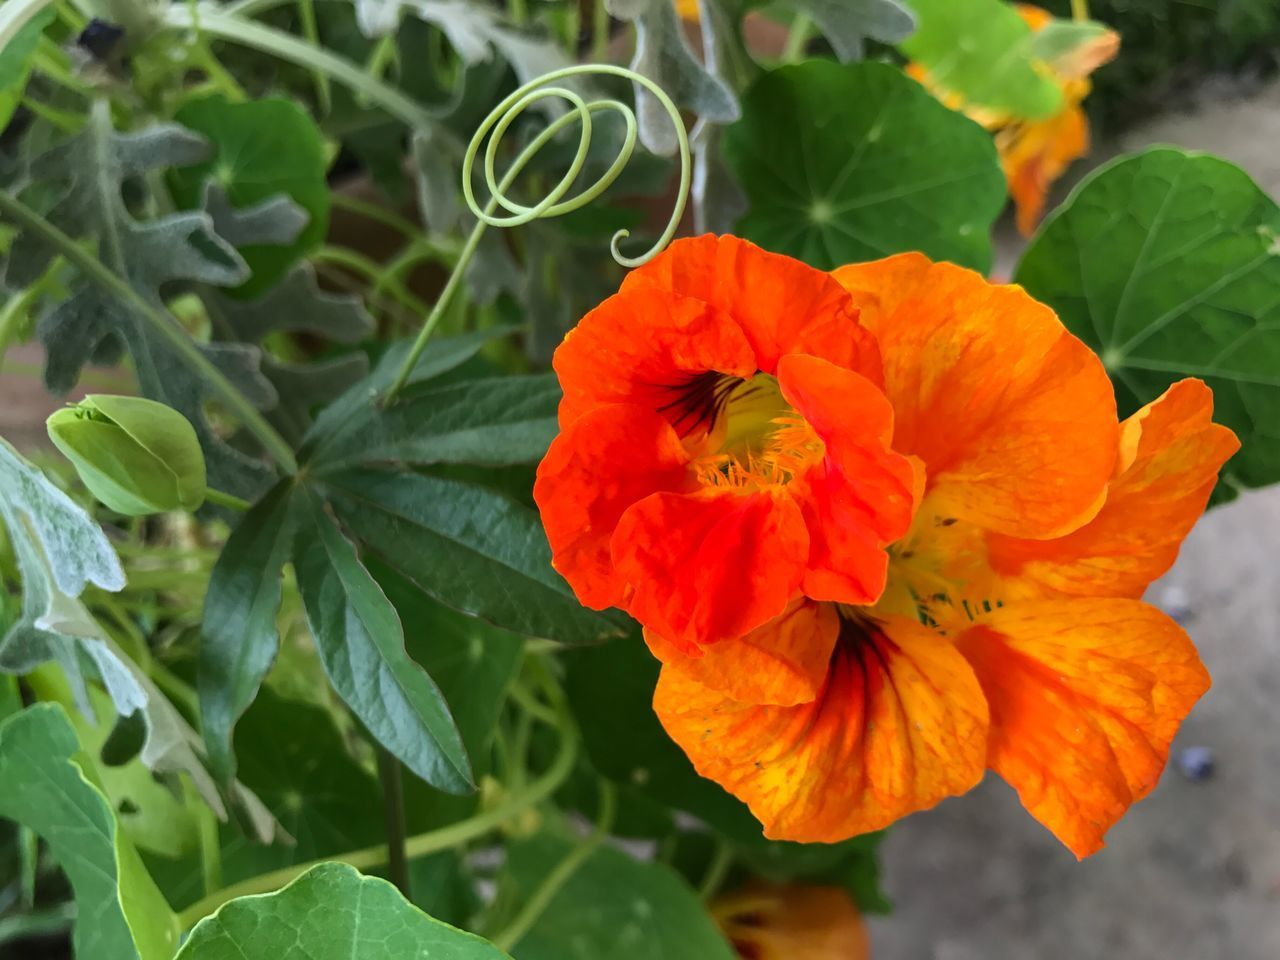 Swirly Flower Growth Plant Beauty In Nature Petal Nature Leaf Fragility Flower Head Orange Color Blooming Freshness Outdoors Close-up Green Color No People Day Tendril Orange Nasturtium Swirl